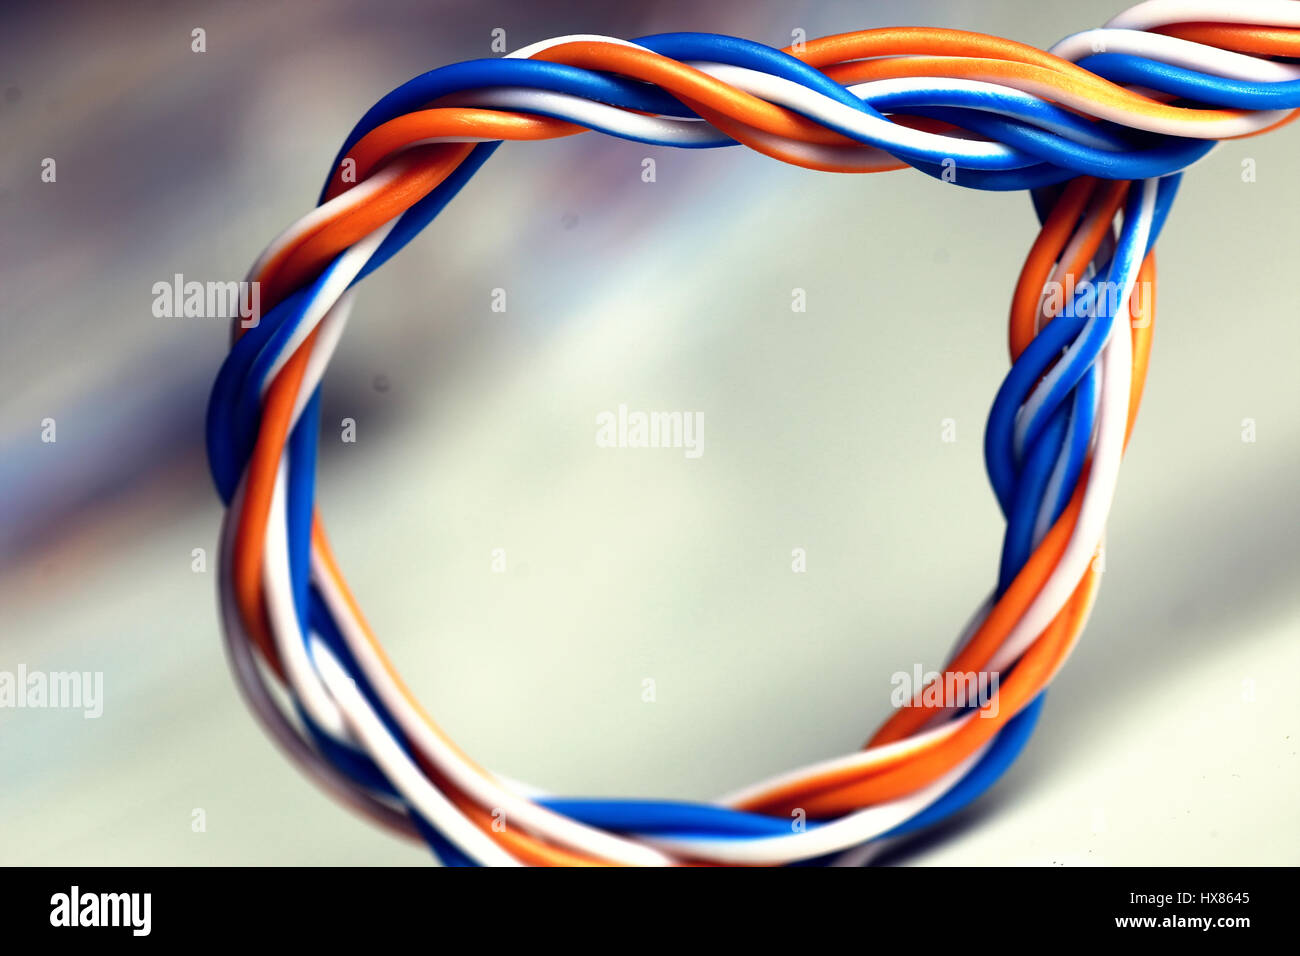 Mess Of Electric Cables And Telephone Wires Stock Photos Lan Plug Wiring Wire Color Image